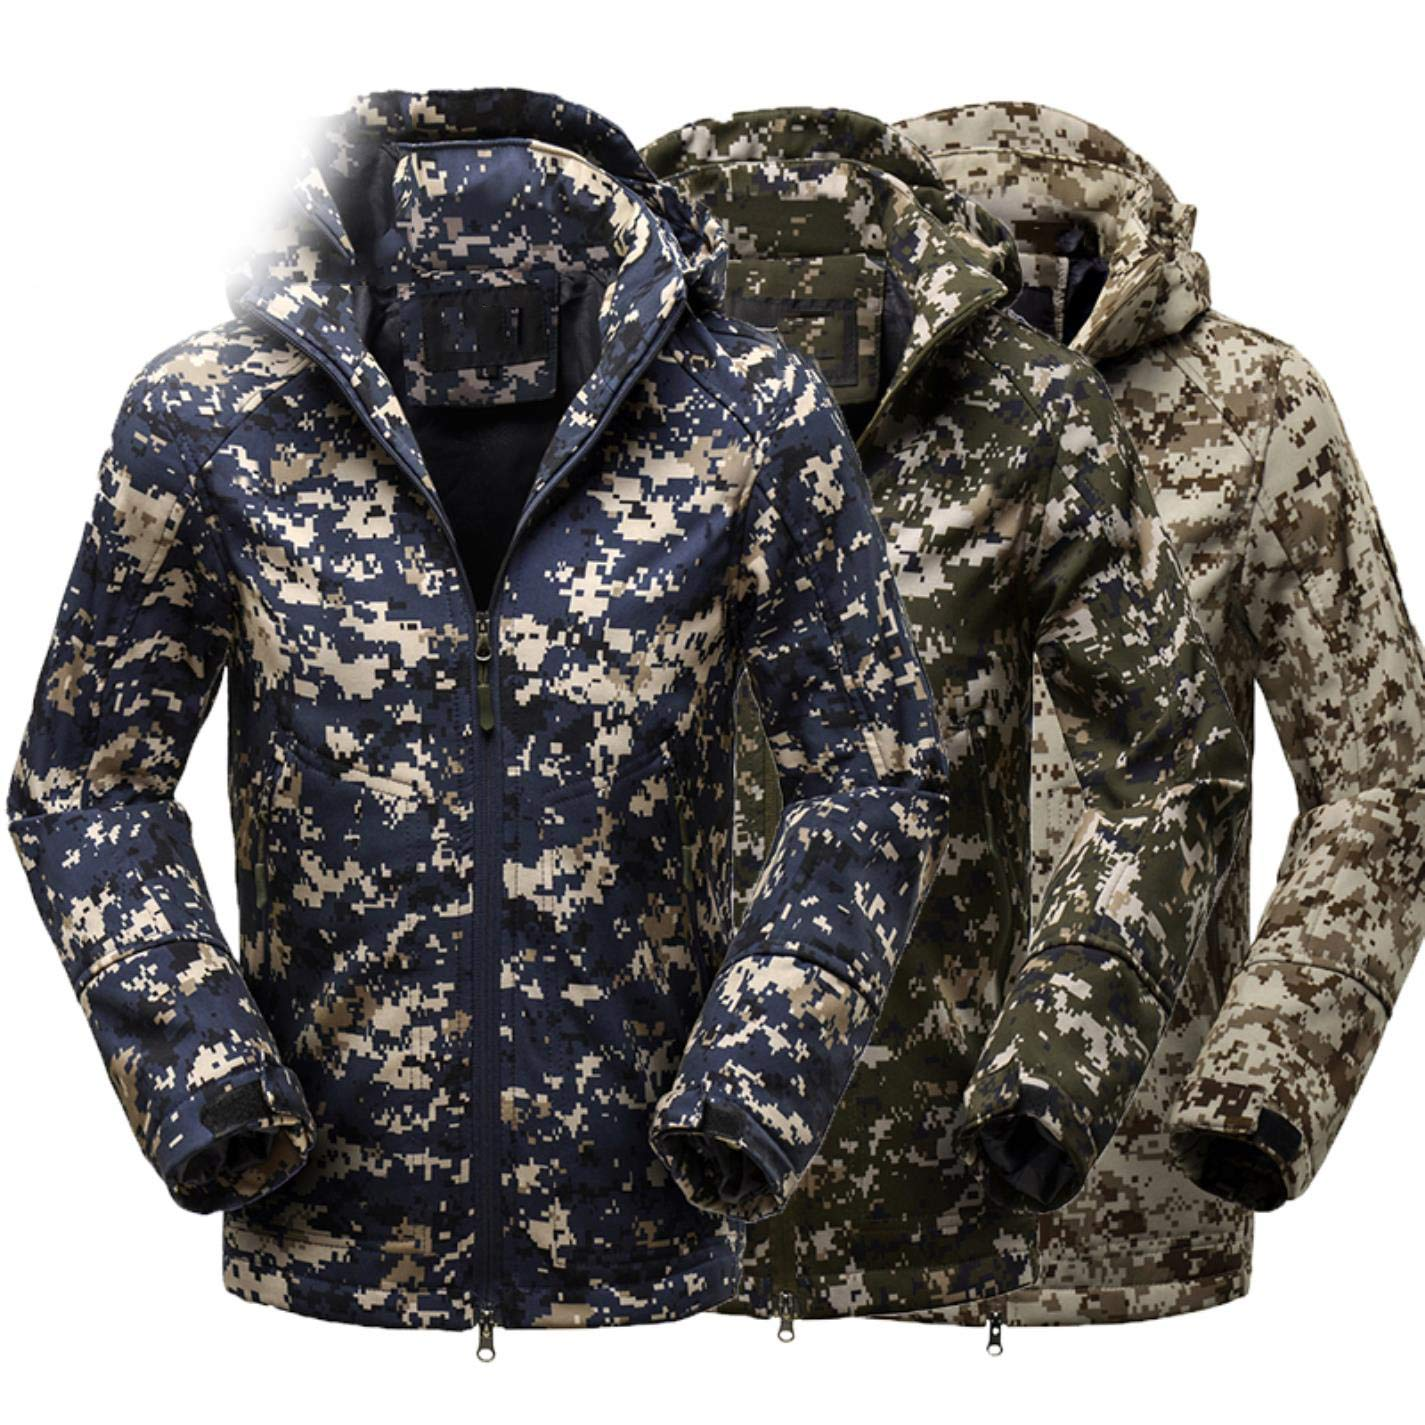 Amazon.com: SmXVr Men Outdoor Mountaineering Camouflage ...